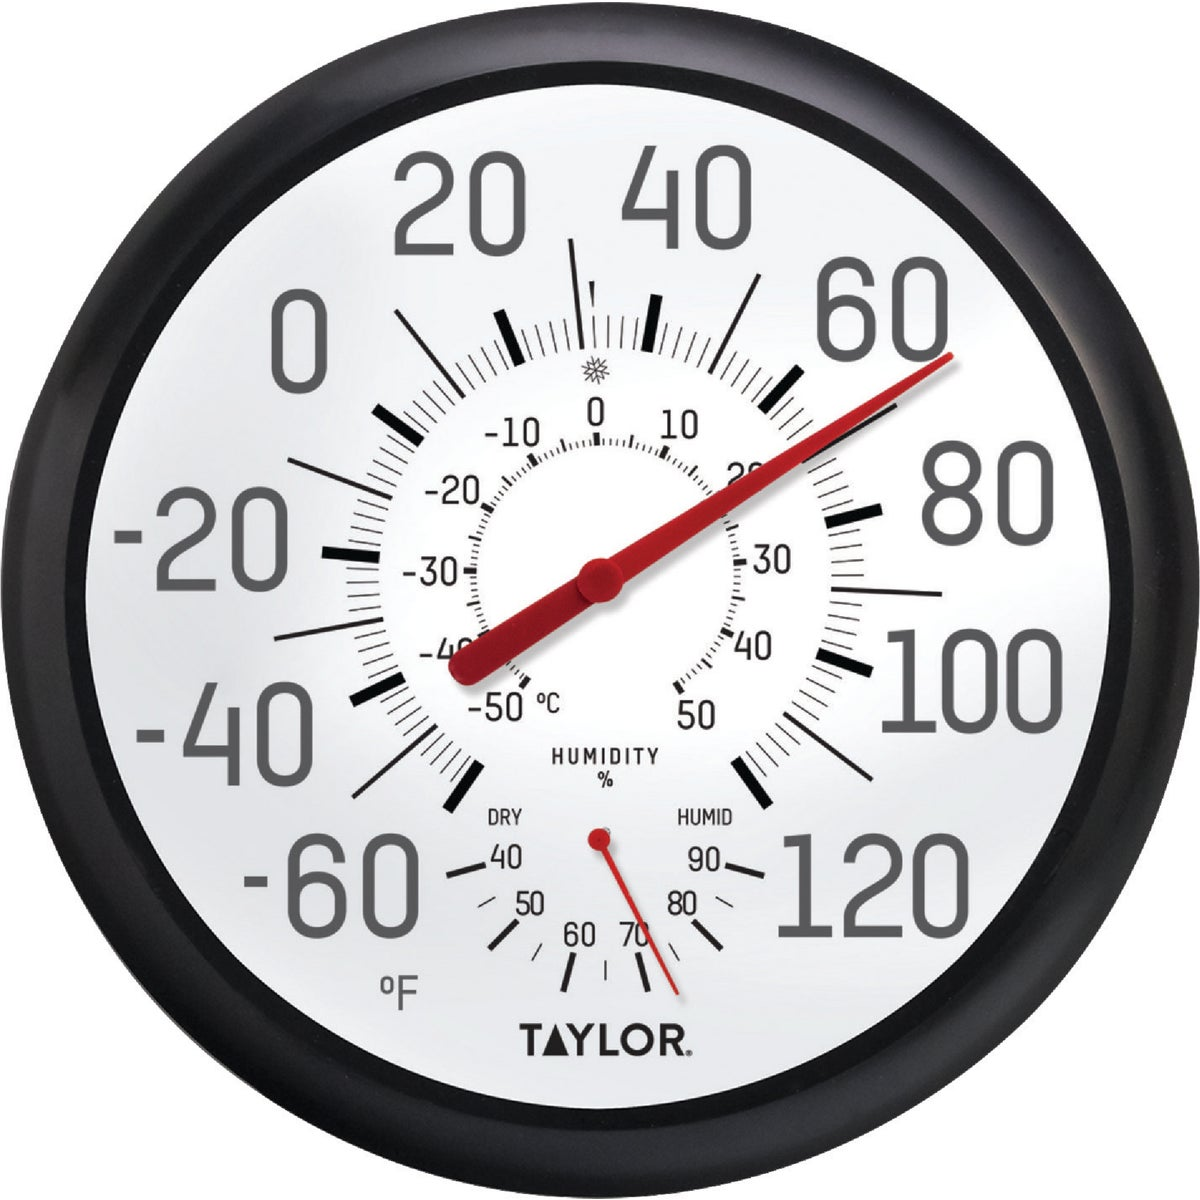 HUMIDTY DIAL THERMOMETER